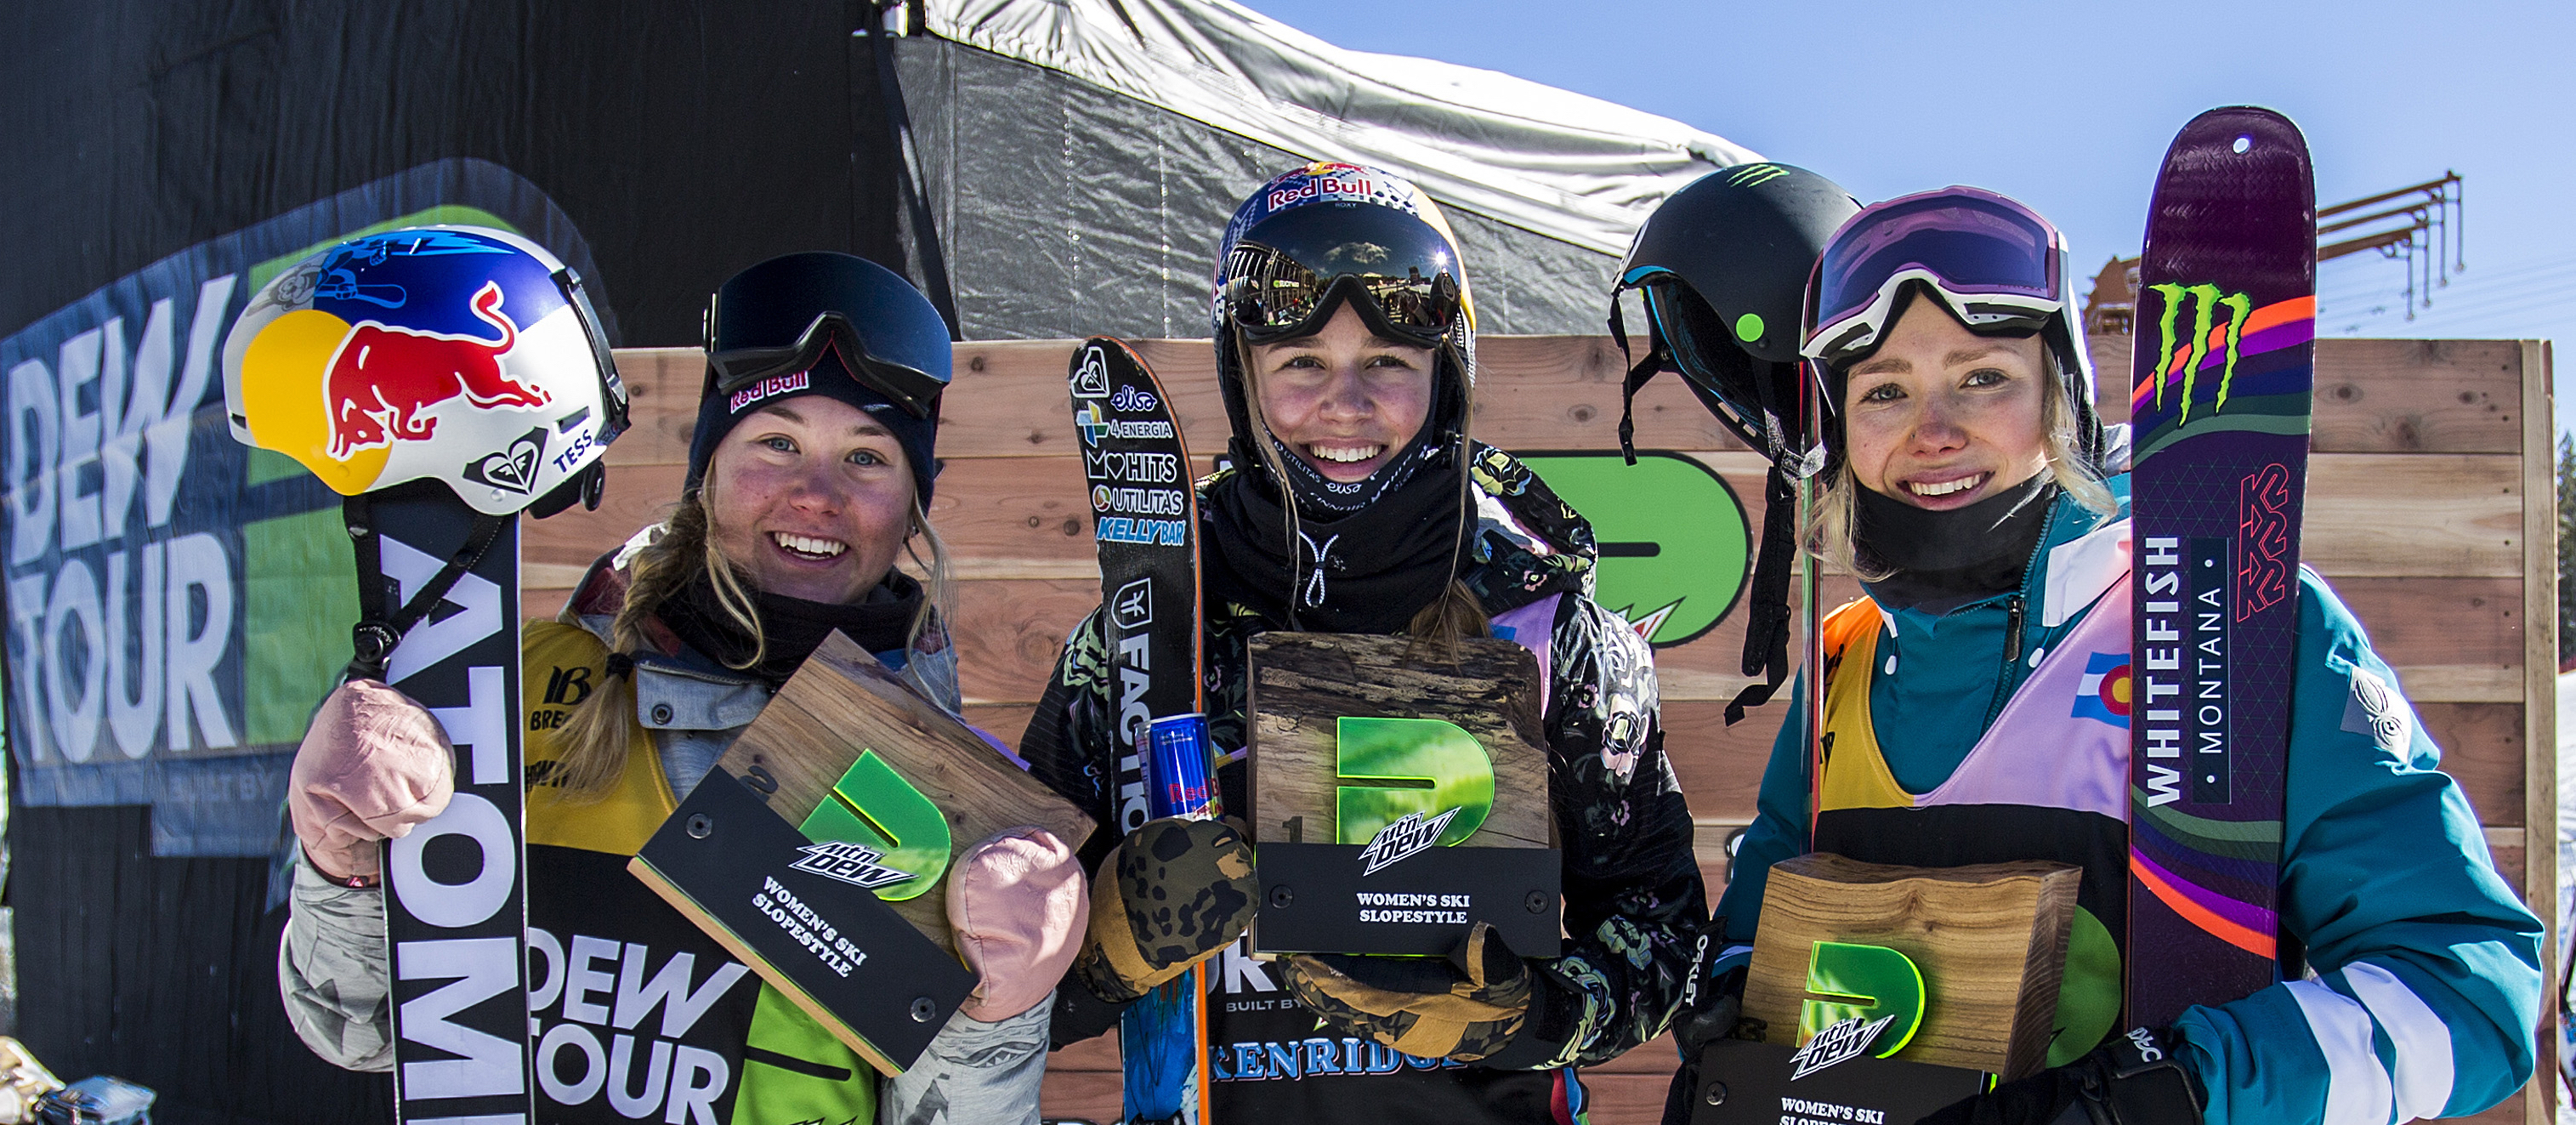 Women's freeski slopestyle podium at Dew Tour.